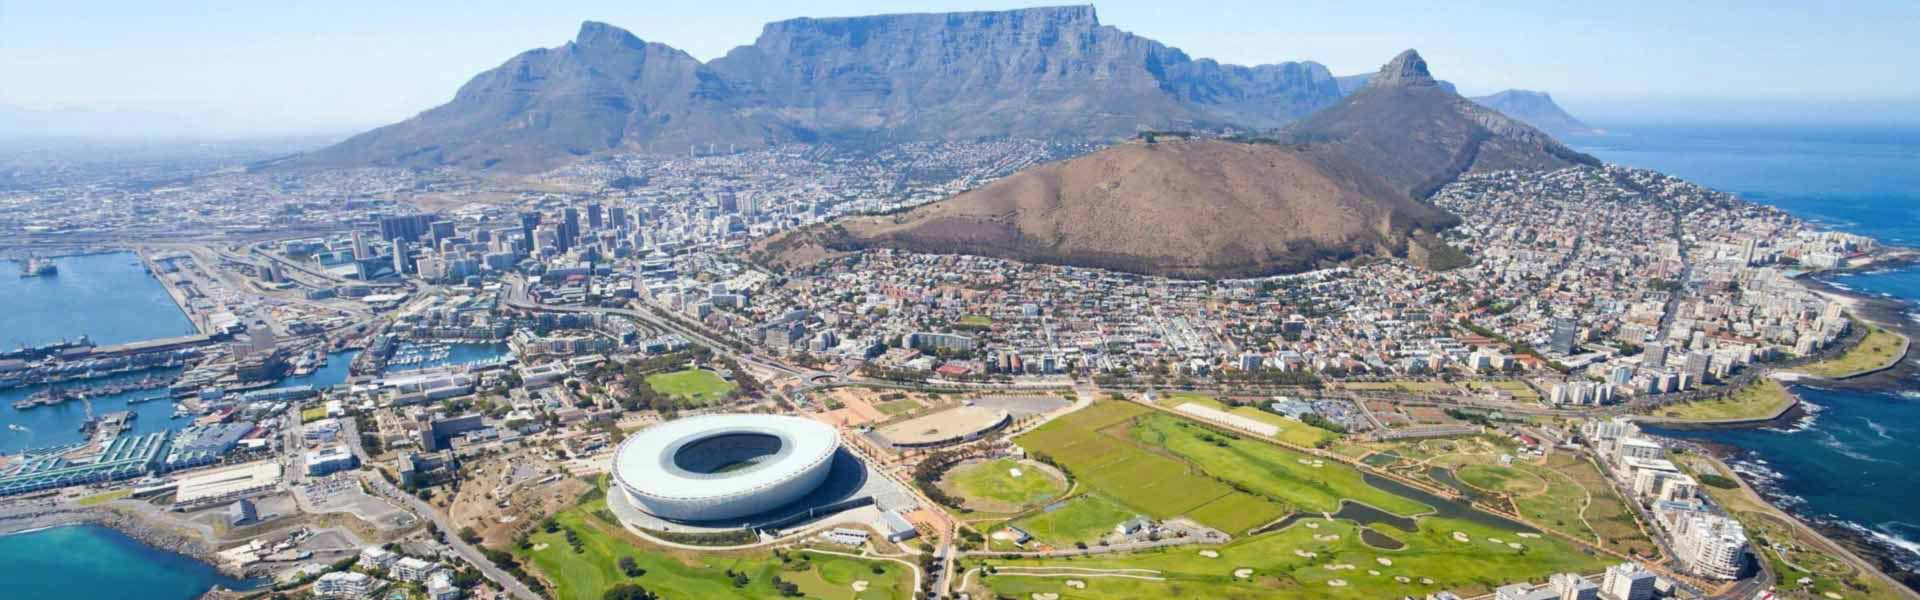 The spectacular and vibrant city of Cape Town as seen from the air